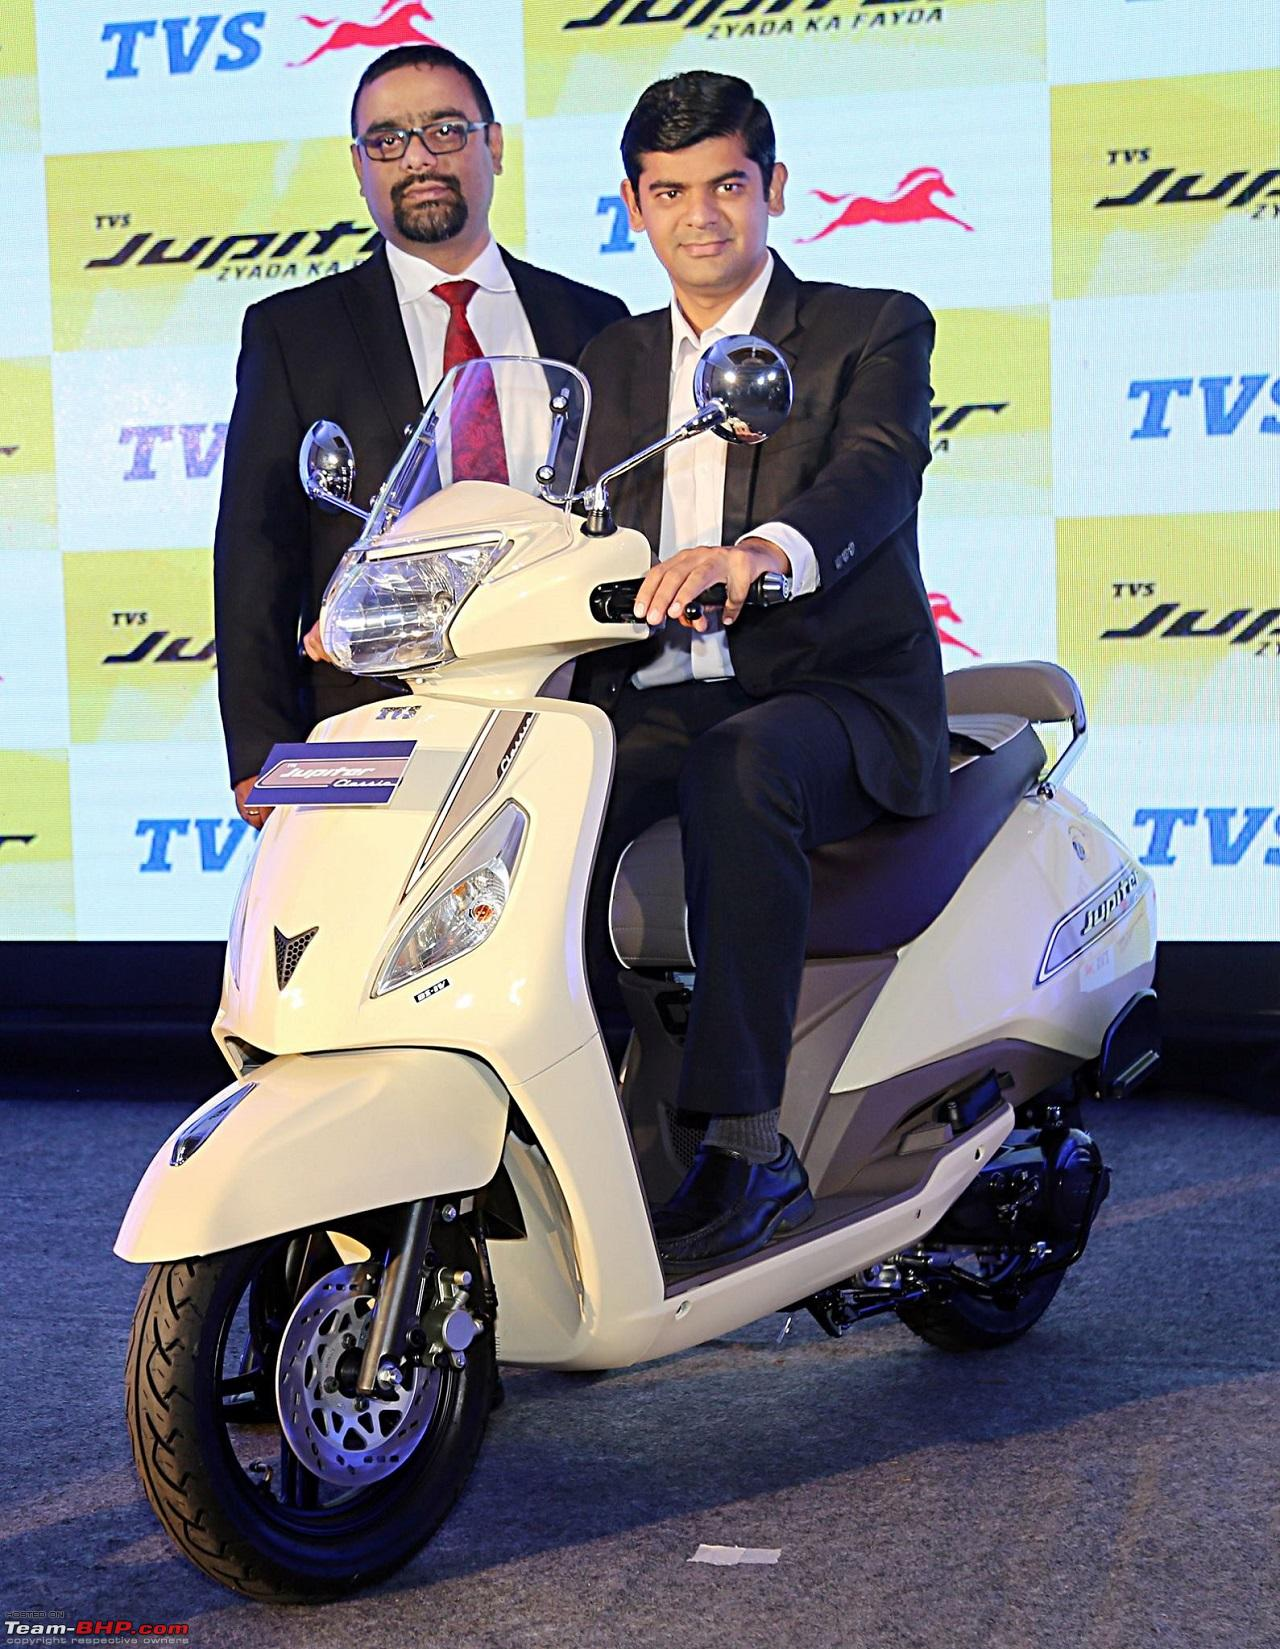 Tvs Jupiter Classic Edition Launched At Rs 55266 Team Bhp